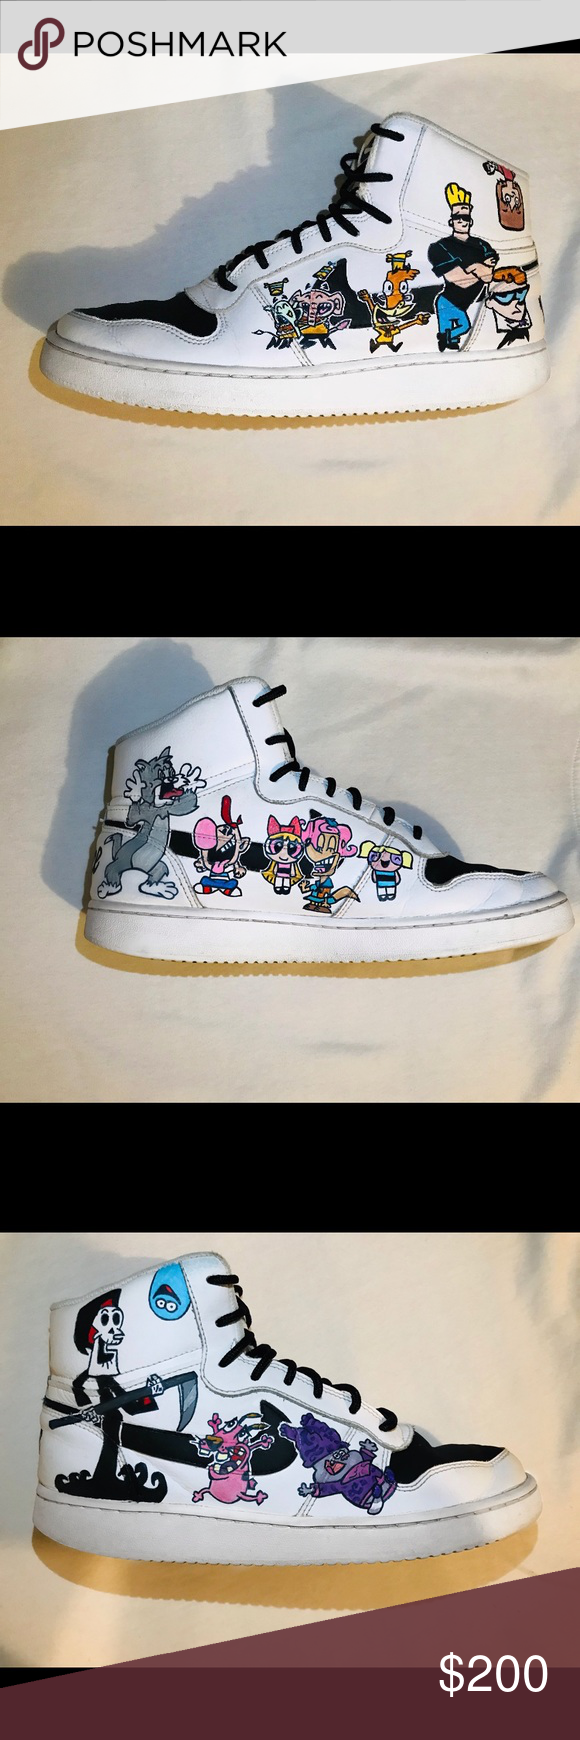 Custom Designed Air Force Ones Cartoon Network Air Force Ones